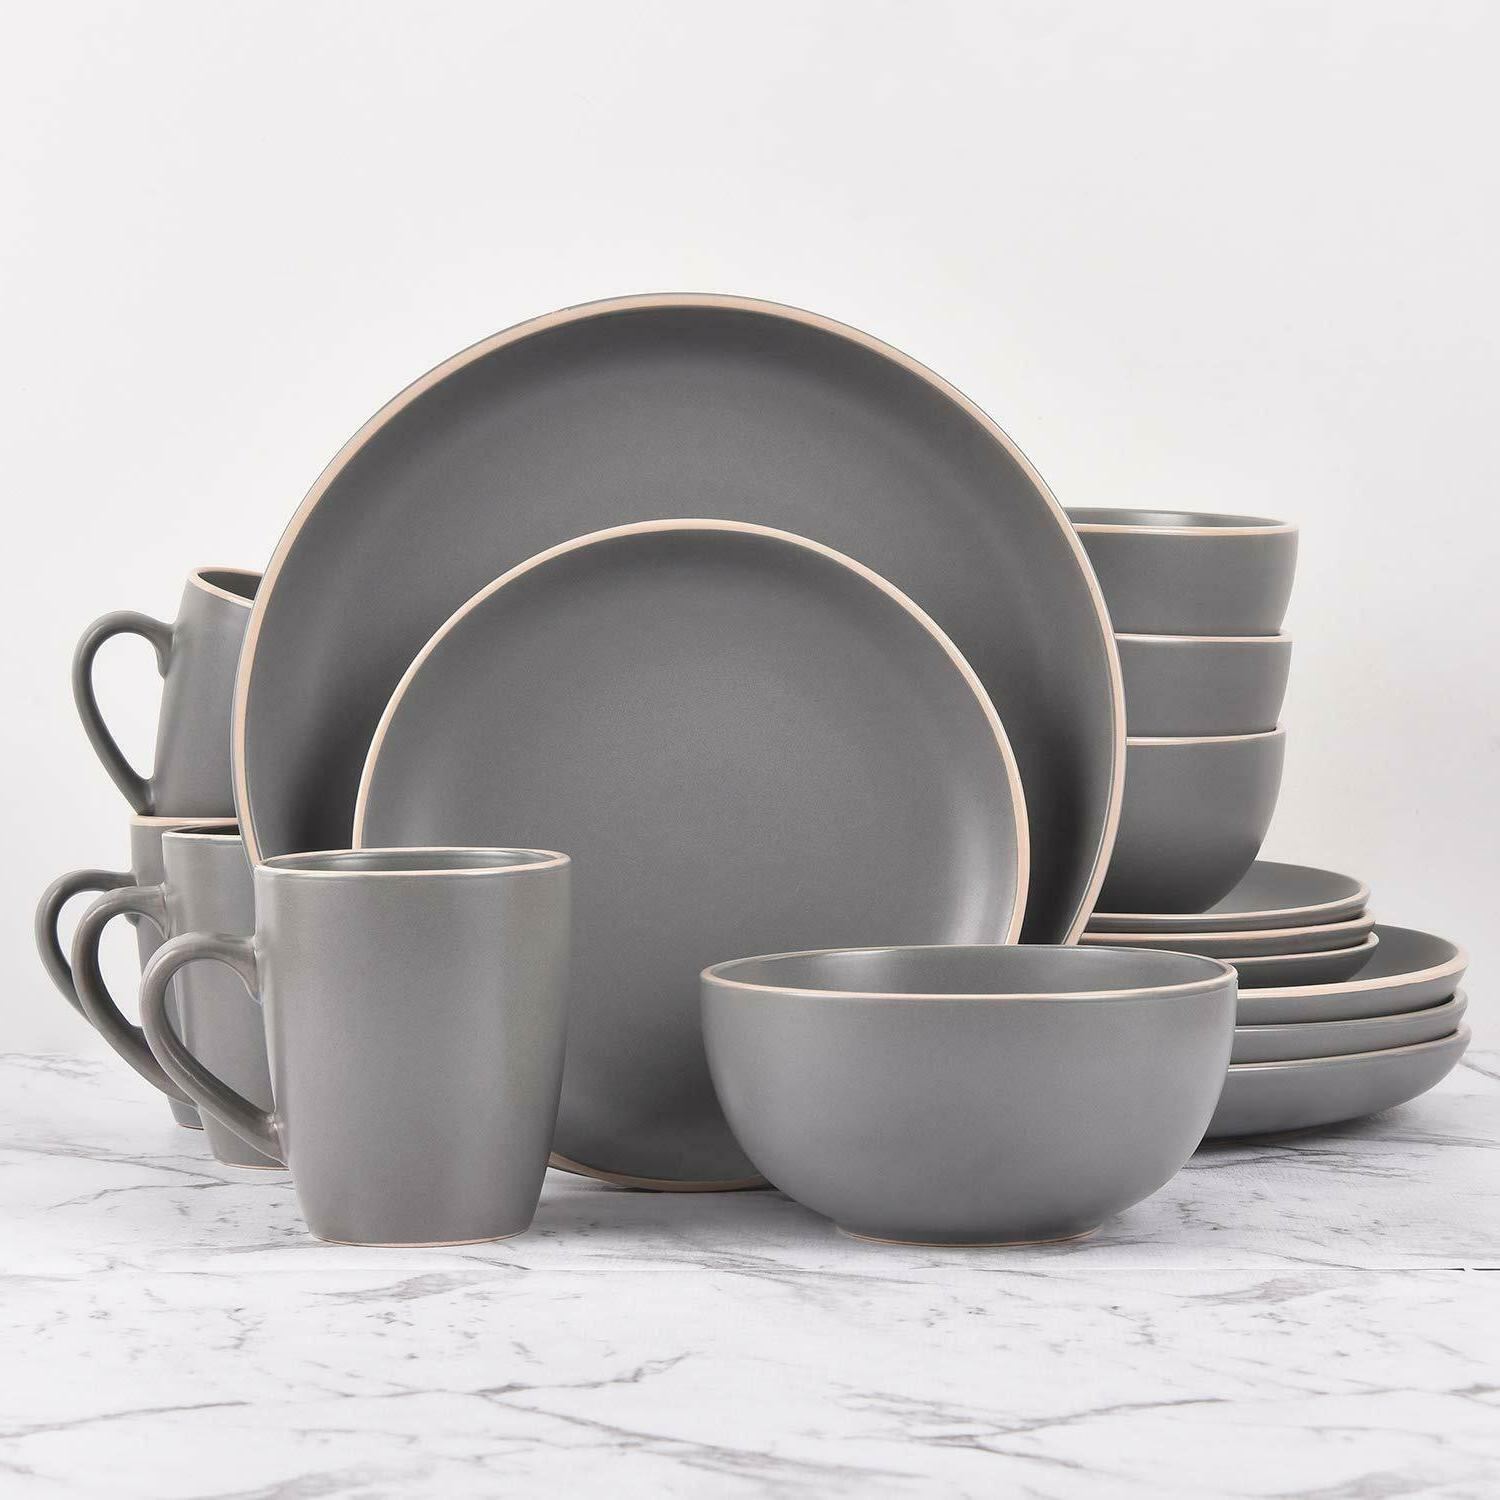 Ceramic Dinnerware Set Service For 4 Table Plates Bowls Mugs